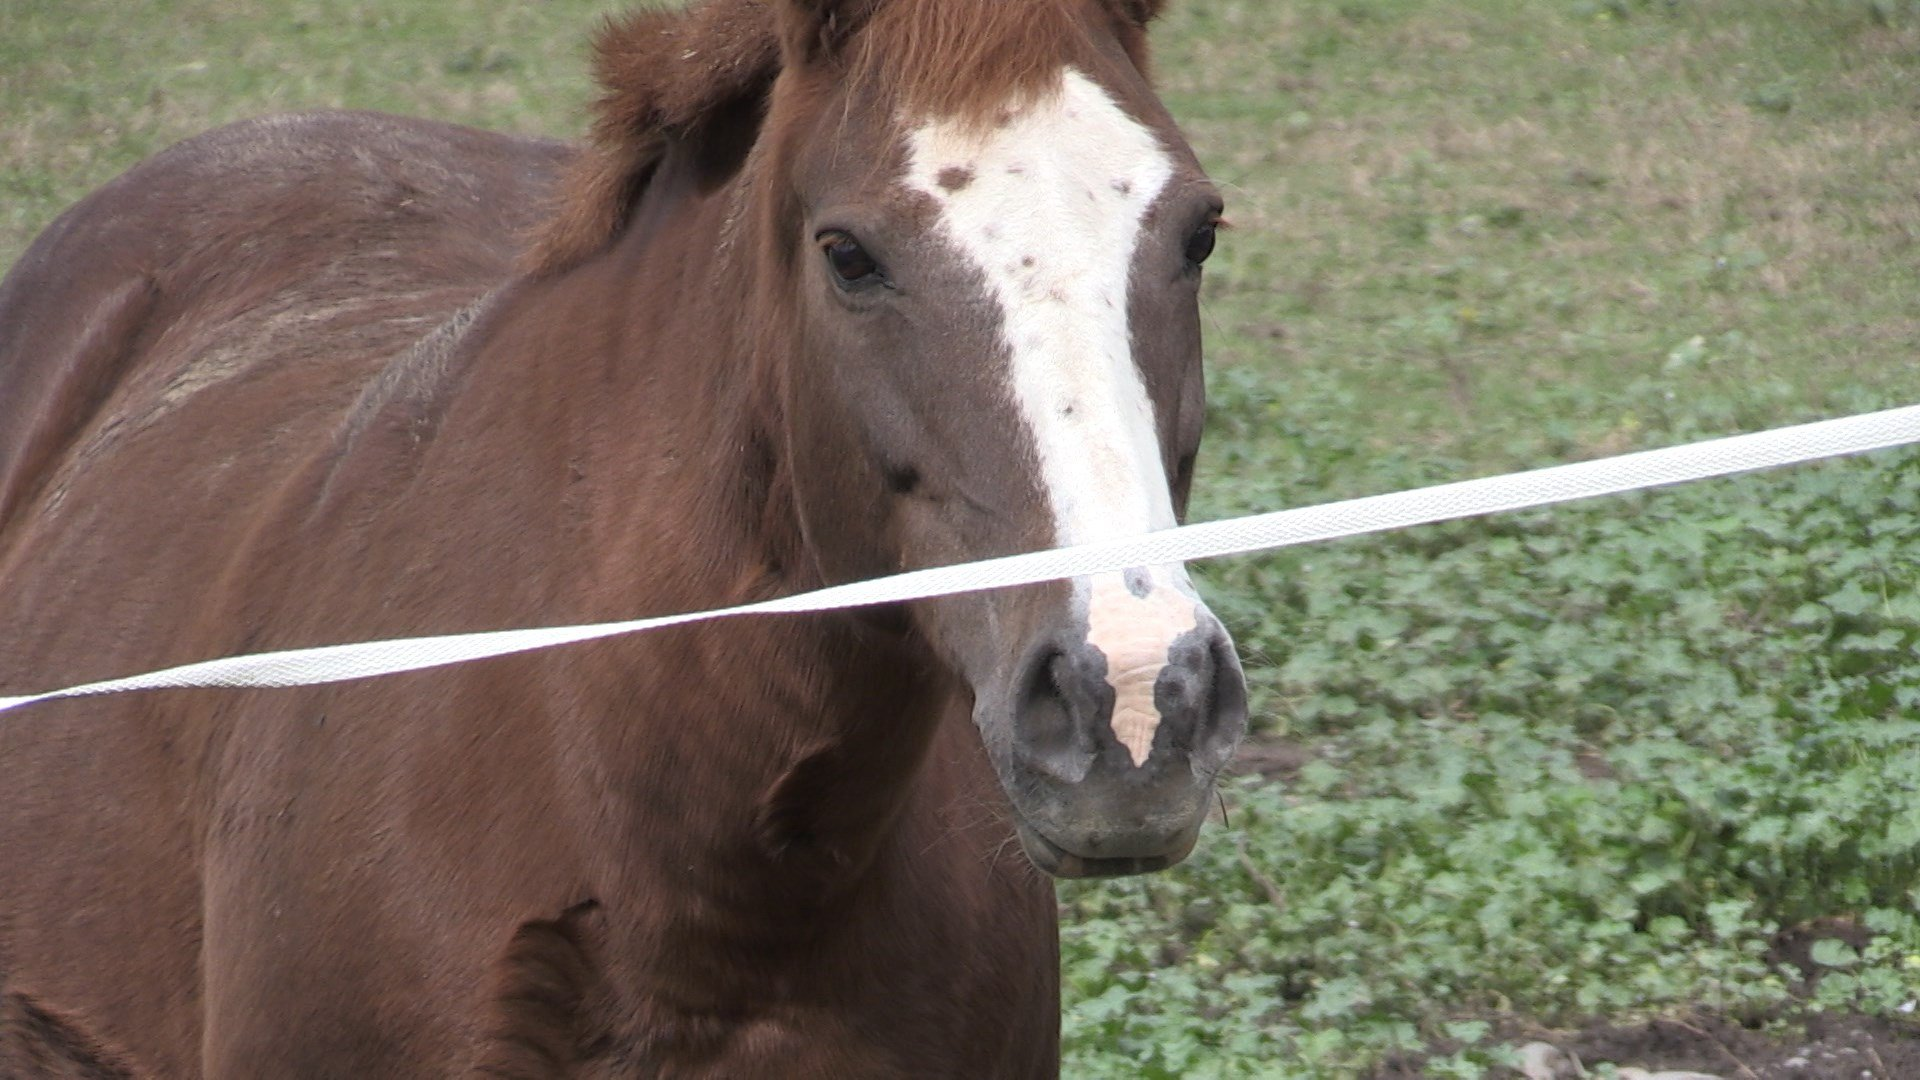 local farm to launch anxiety focused therapeutic riding program